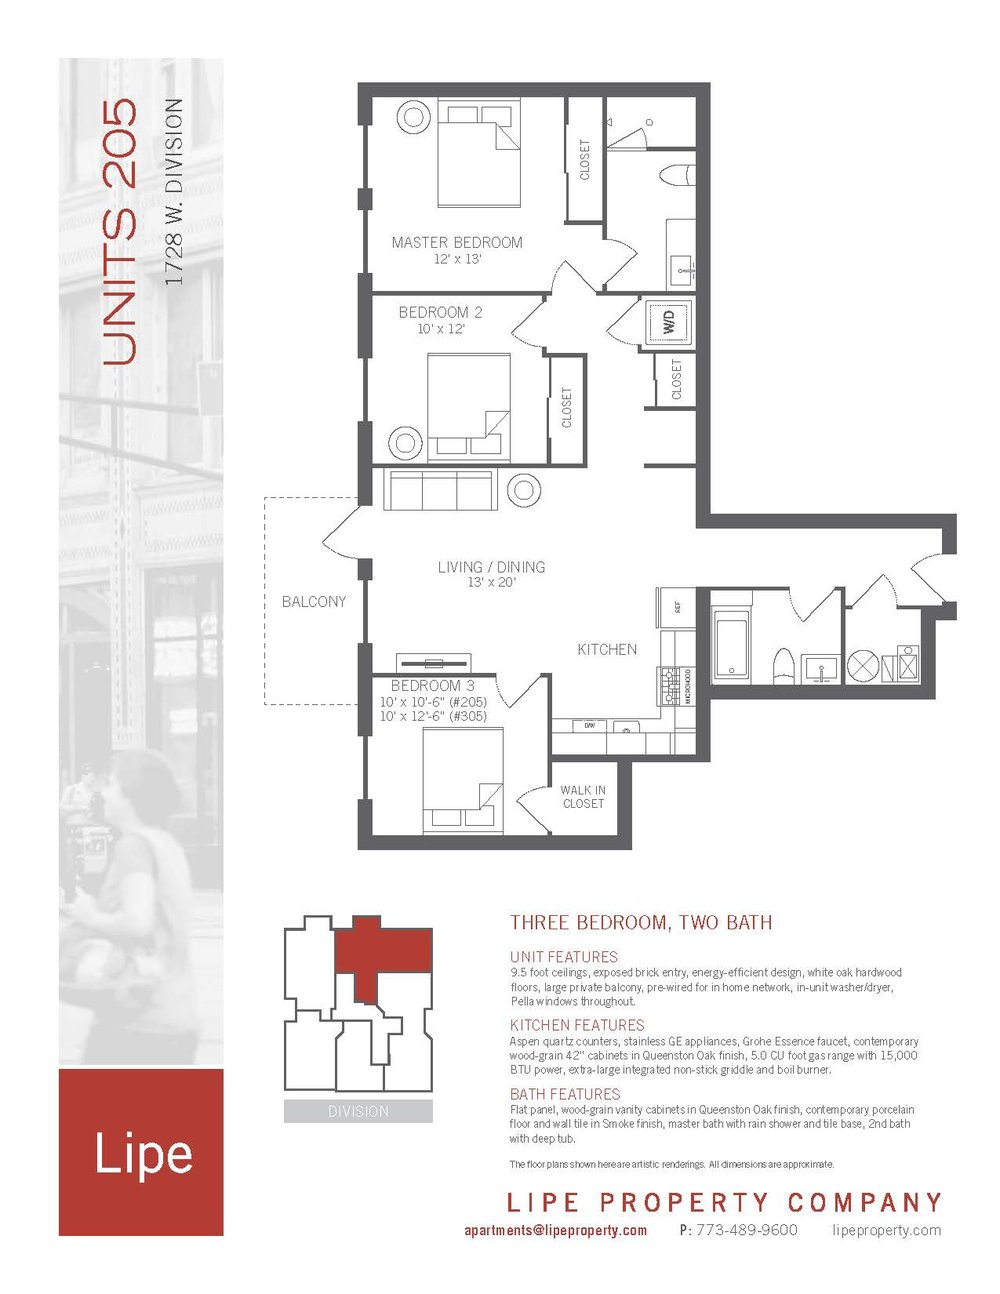 1728-West-Division-205-Floorplan-Chicago-apartment-for-rent.jpg